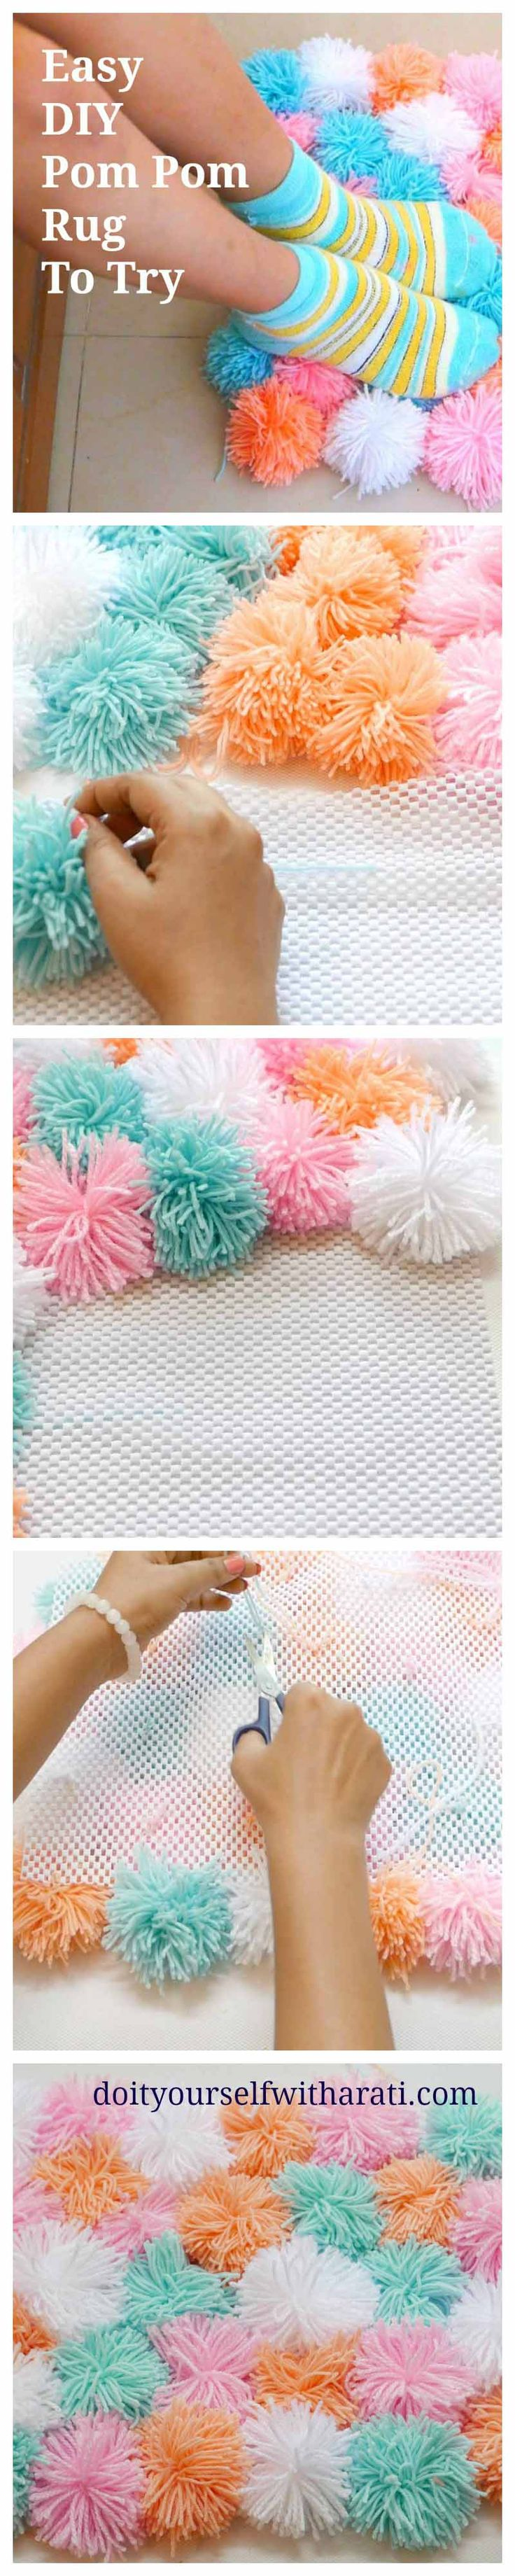 how to make a pom poms rug diy